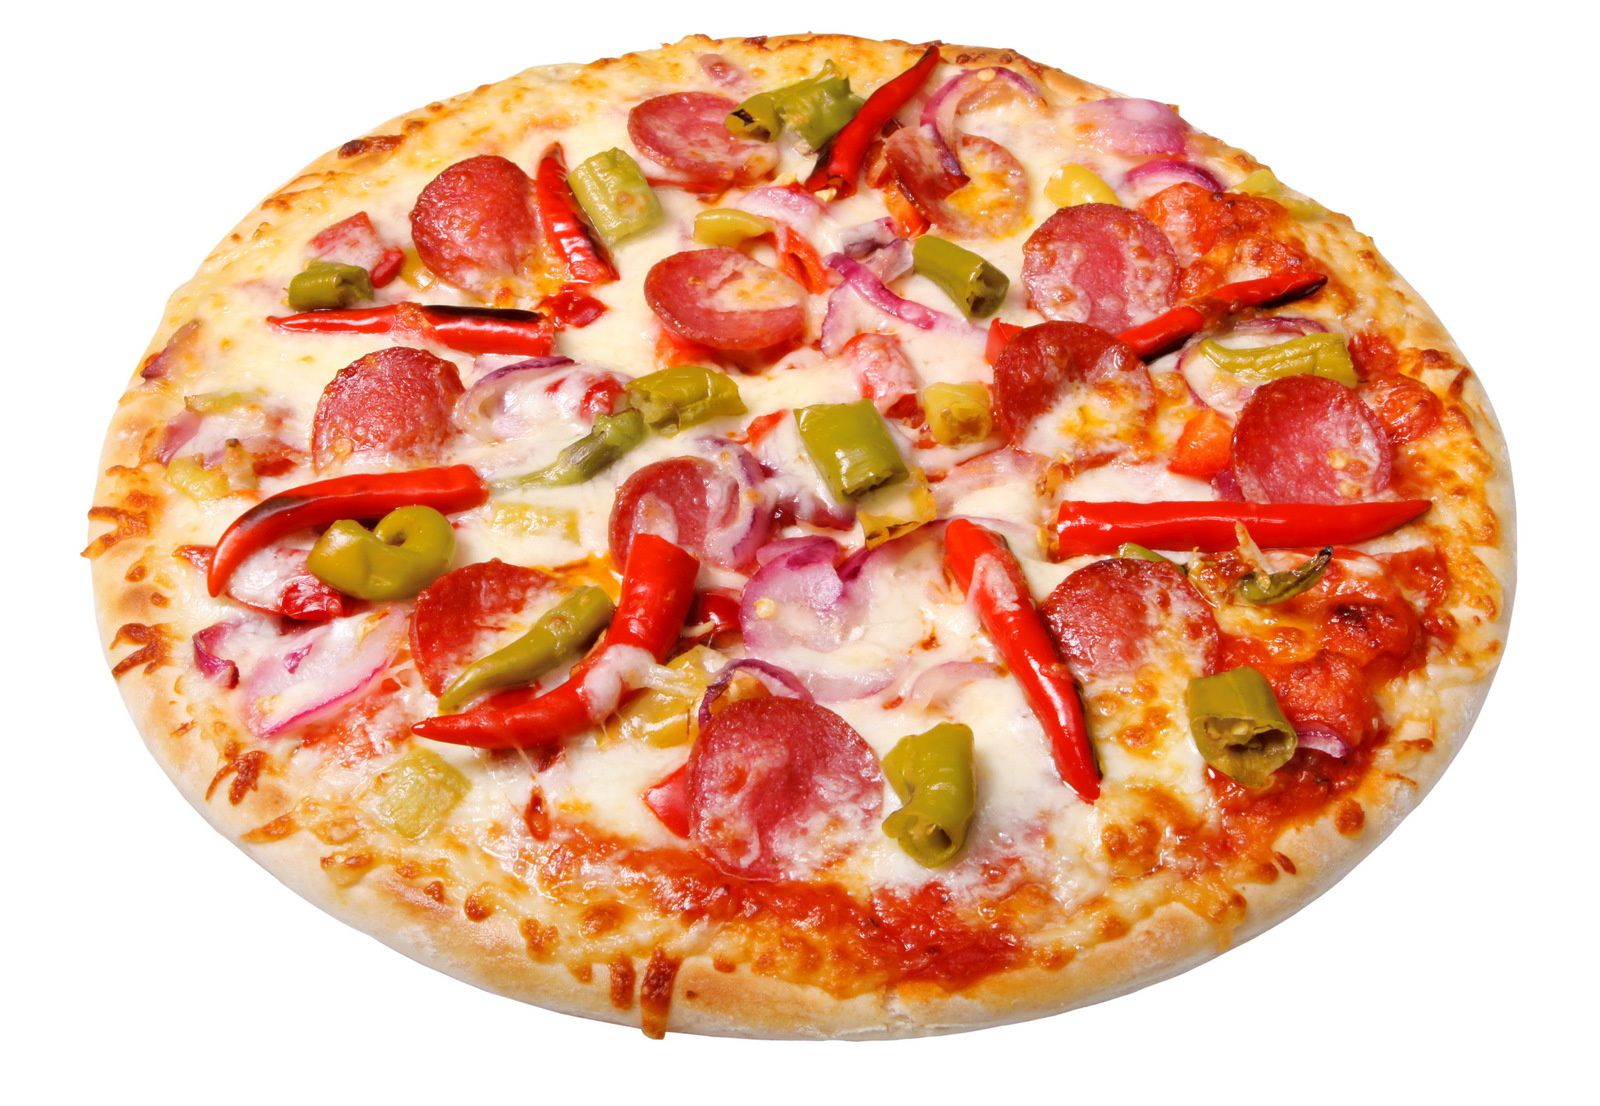 Bon appétit - Pizza - Piments - Nourriture - Wallpaper - Free